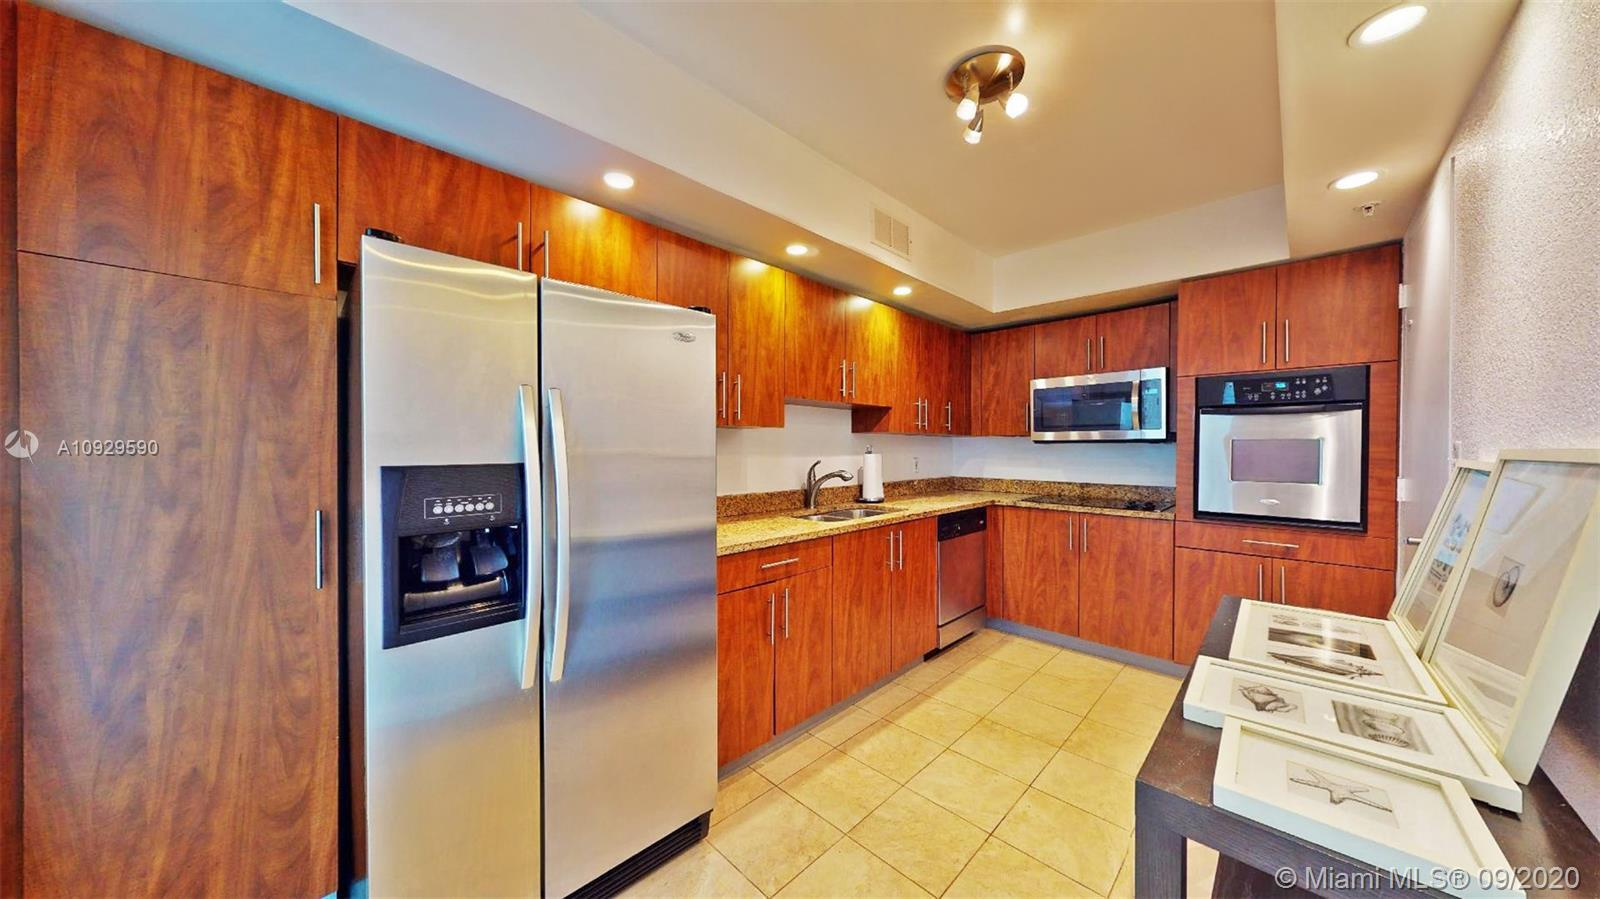 BEAUTIFUL ATLANTIC OCEAN VIEW.TOTALLY REMODELED-STAINLESS STEEL APPLIANCES. 970 SQFT (living area).